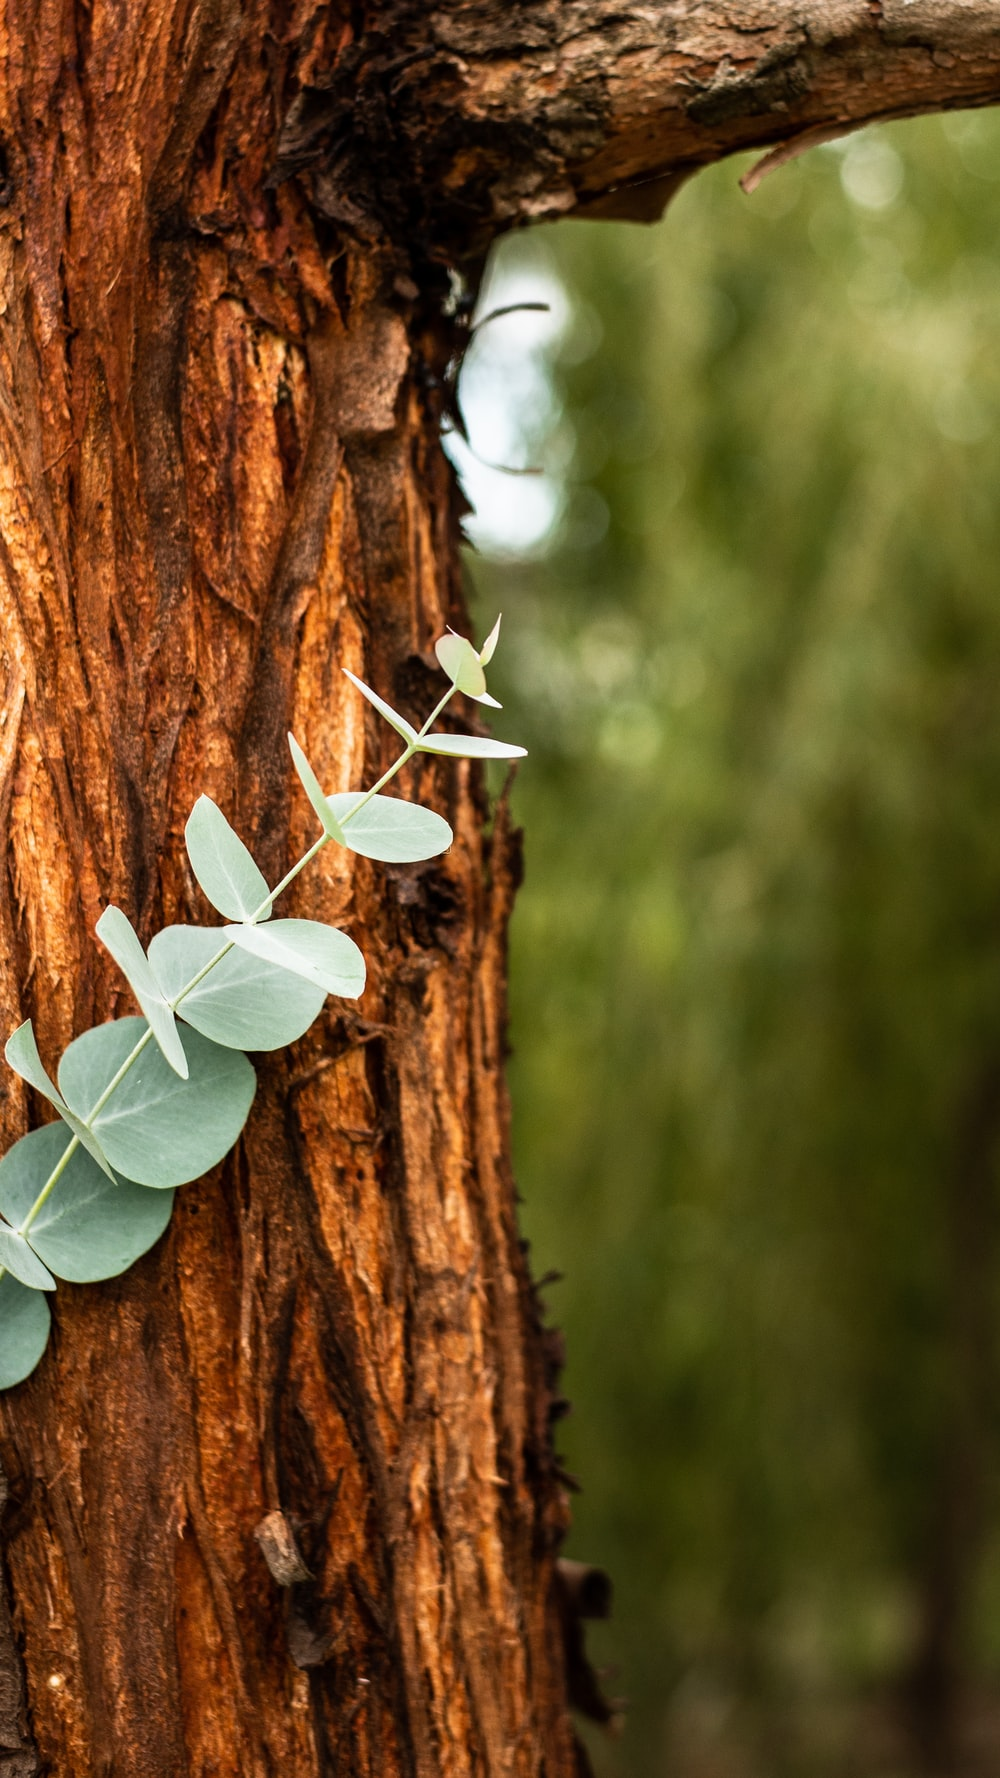 selective focus photography of green-leafed plant on brown tree trunk